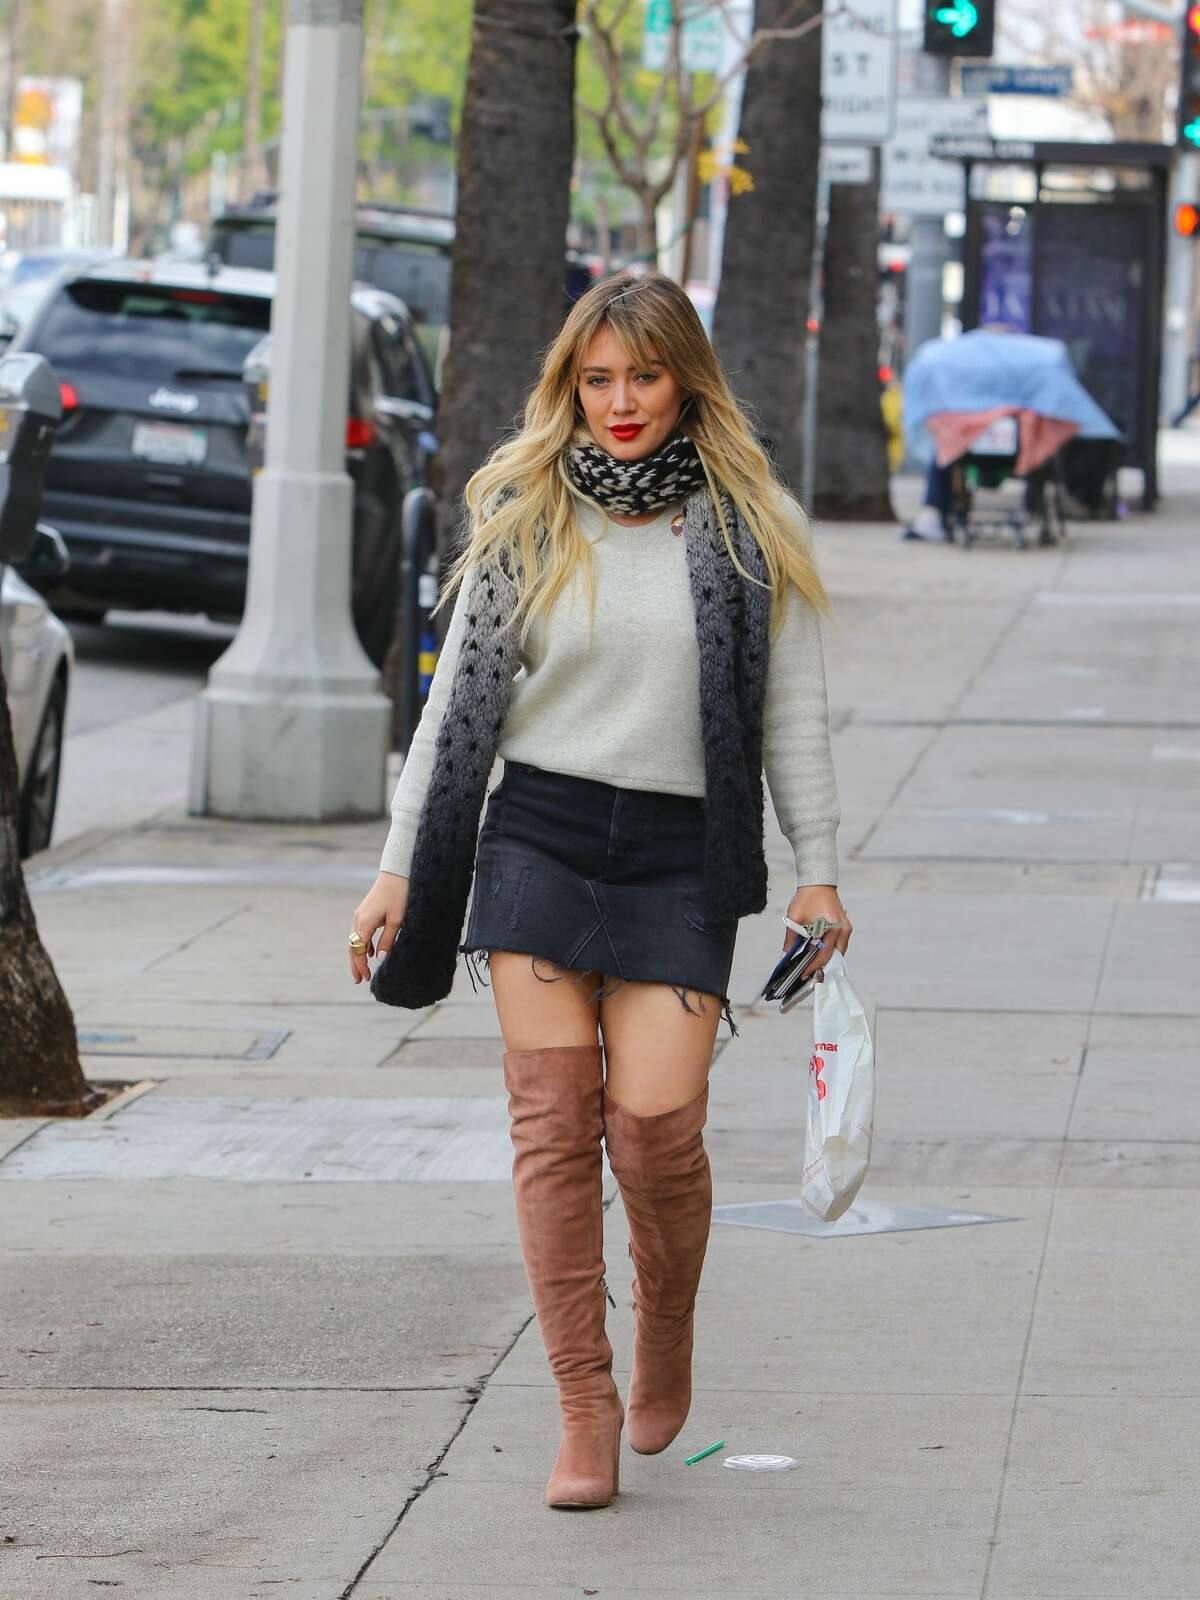 Hilary Duff is seen on January 09, 2017 in Los Angeles, California. Keep clicking to see more celebrities in mini skirts.